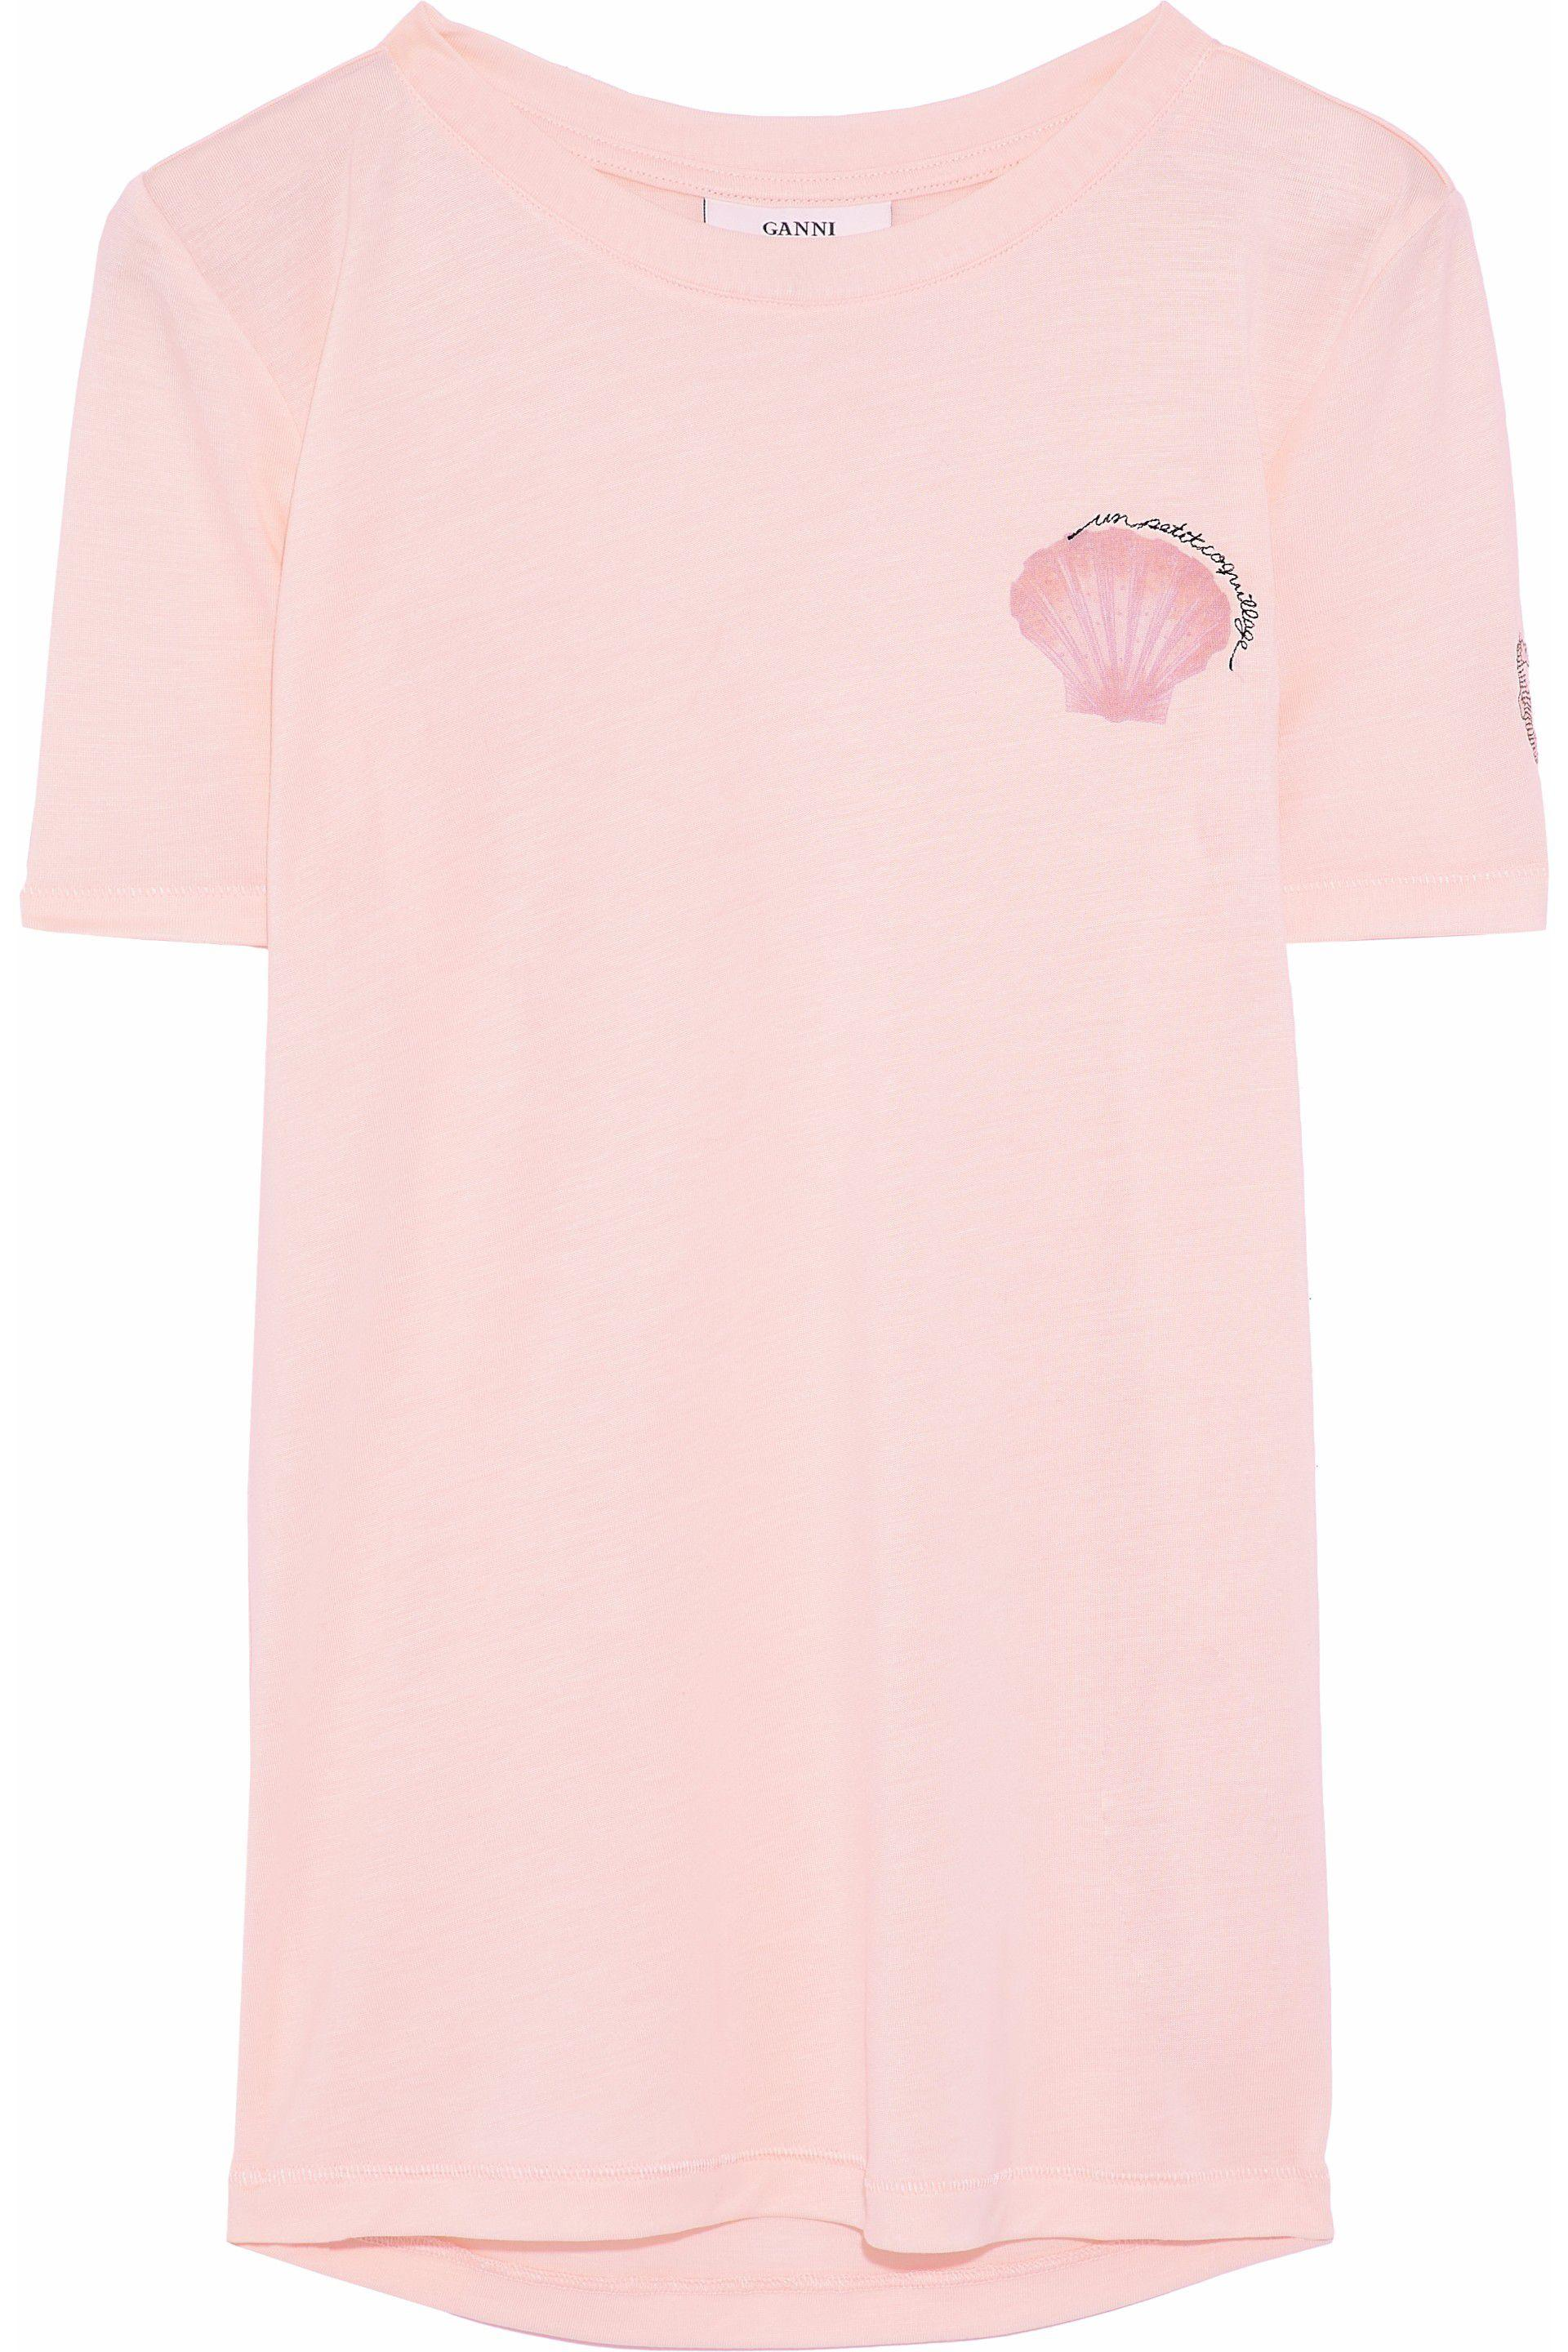 9d34484005b2 Ganni - Woman Embroidered Printed Jersey T-shirt Pastel Pink - Lyst. View  fullscreen